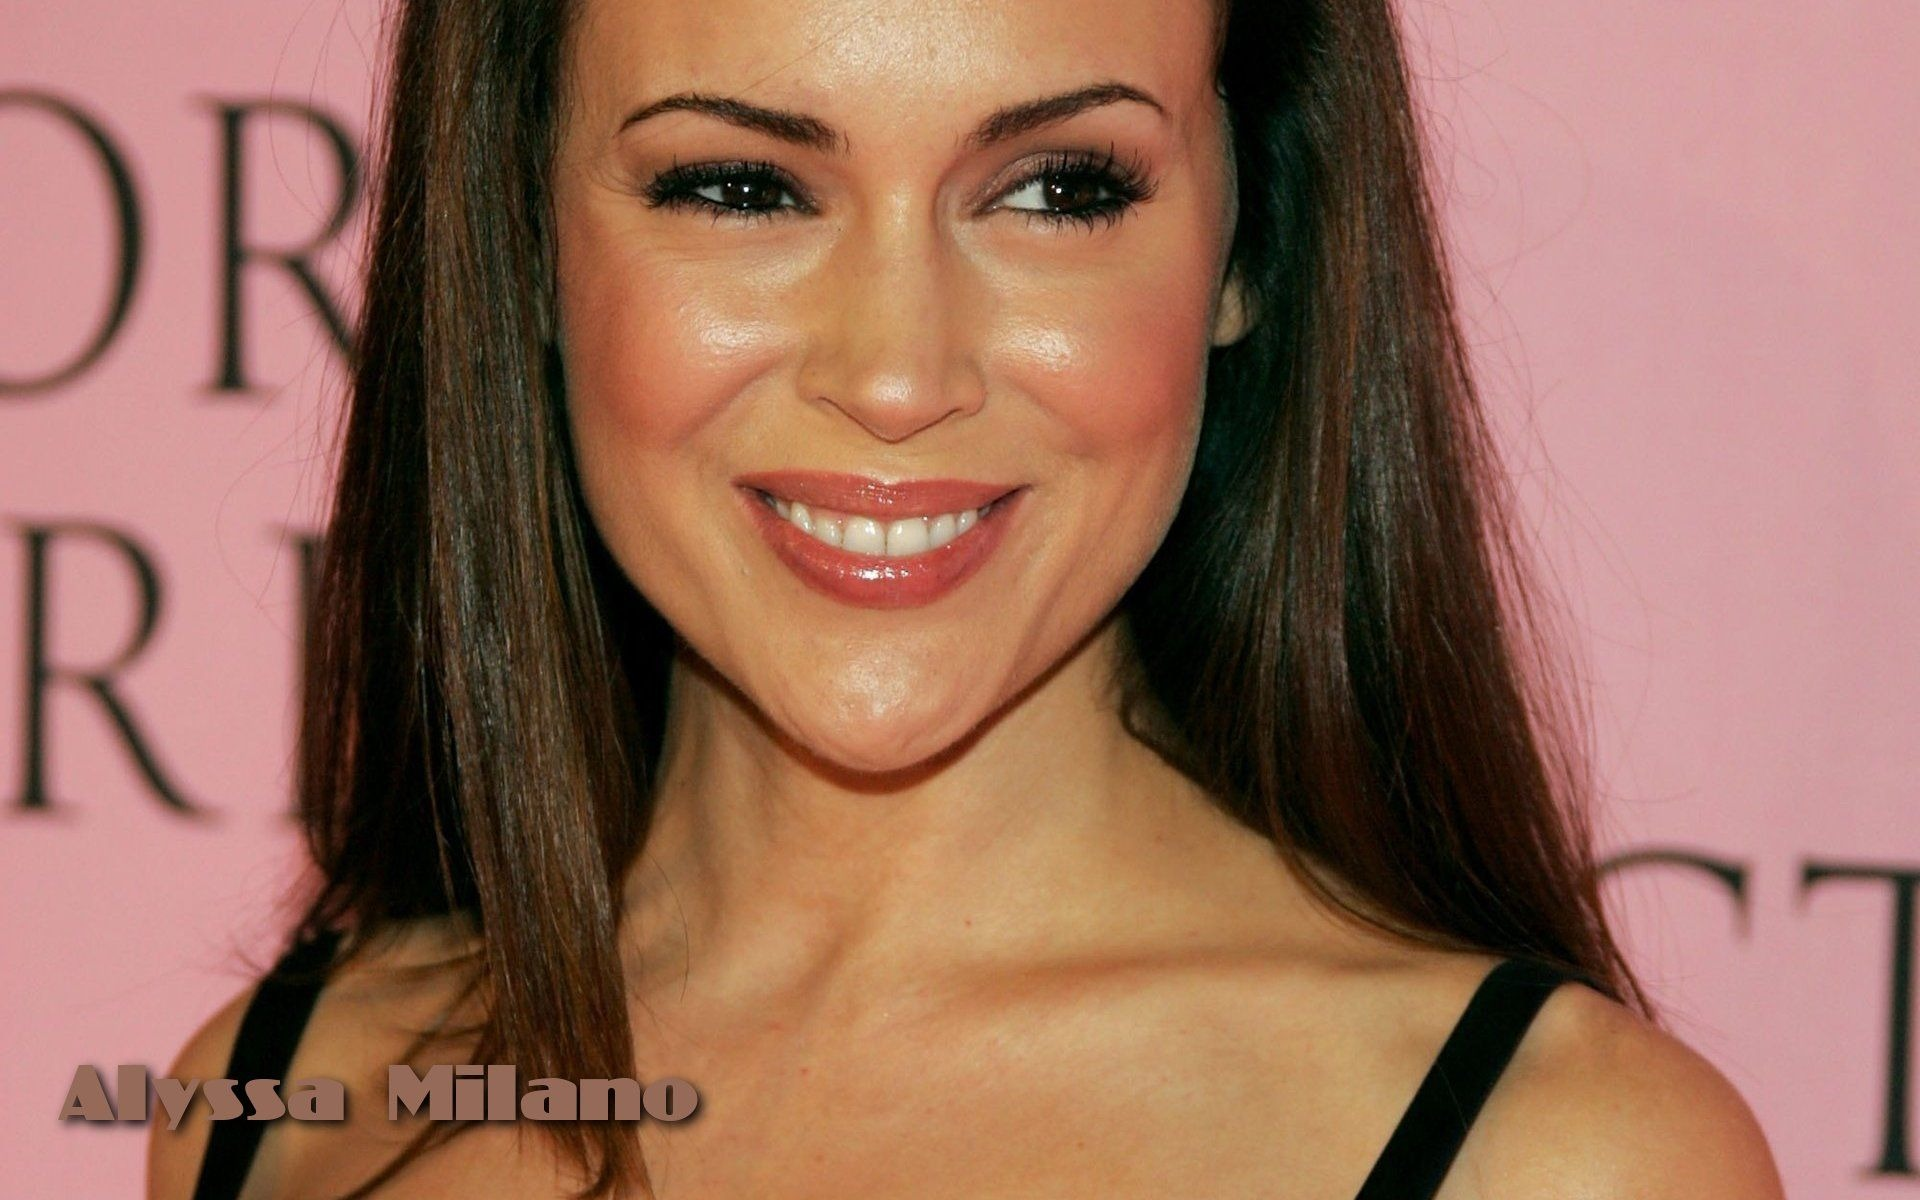 Alyssa Milano #046 - 1920x1200 Wallpapers Pictures Photos Images